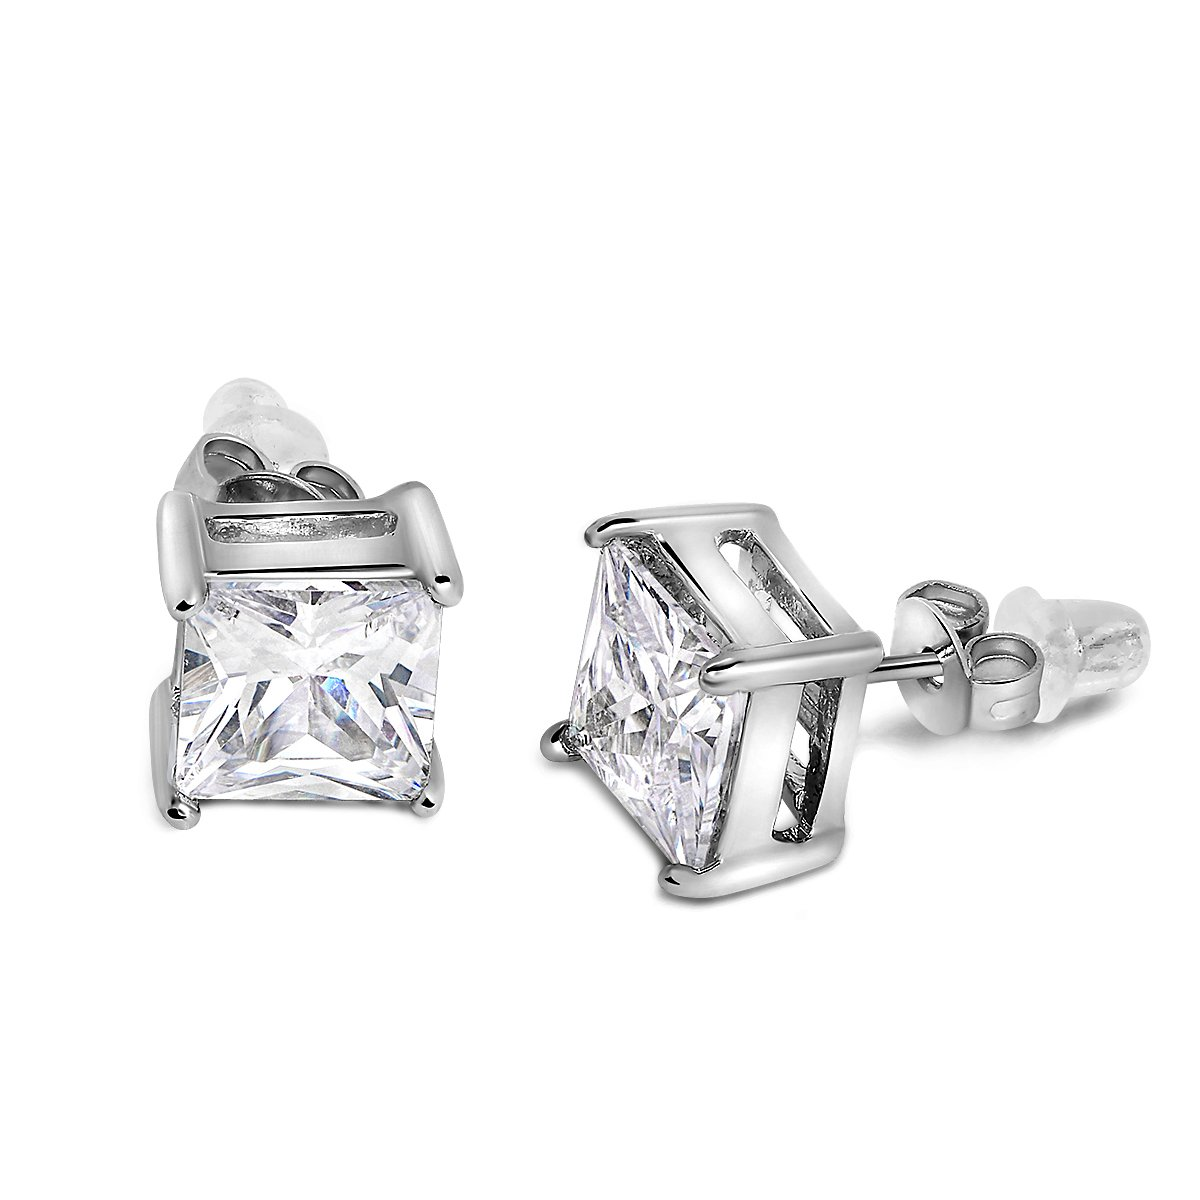 Buyless Fashion Girls Stud Earrings White Crystal CZ With Additional Push Back